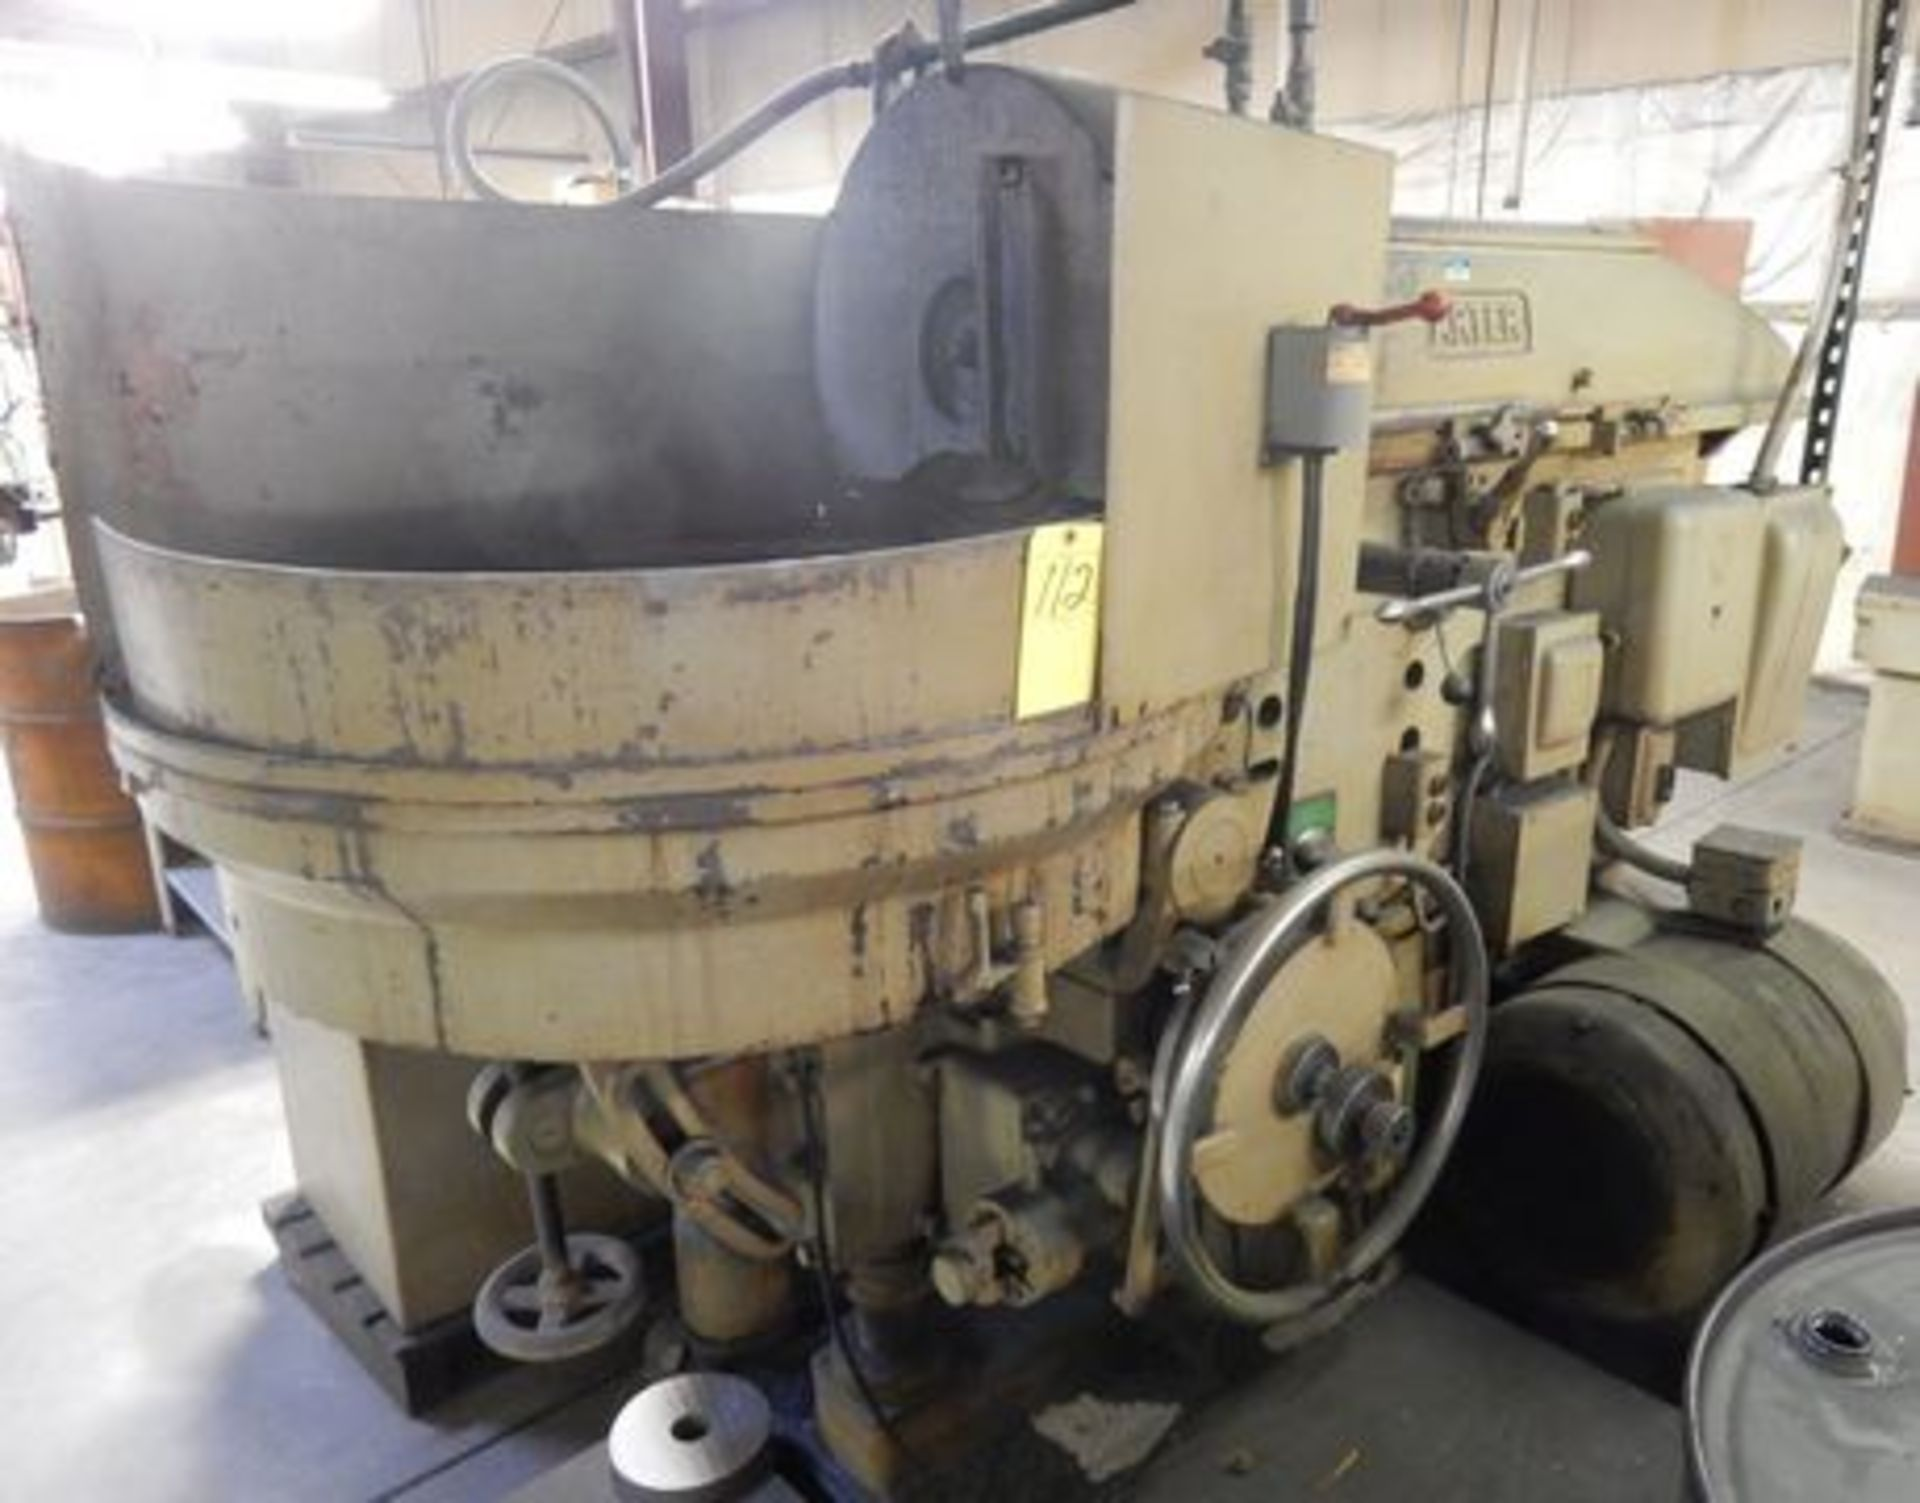 "Lot 112 - ARTER ROTARY SURFACE GRINDER, M# B-30, S/N 887, 31"" MAG CHUCK, 2-1/4"" X 20"" WHEEL"